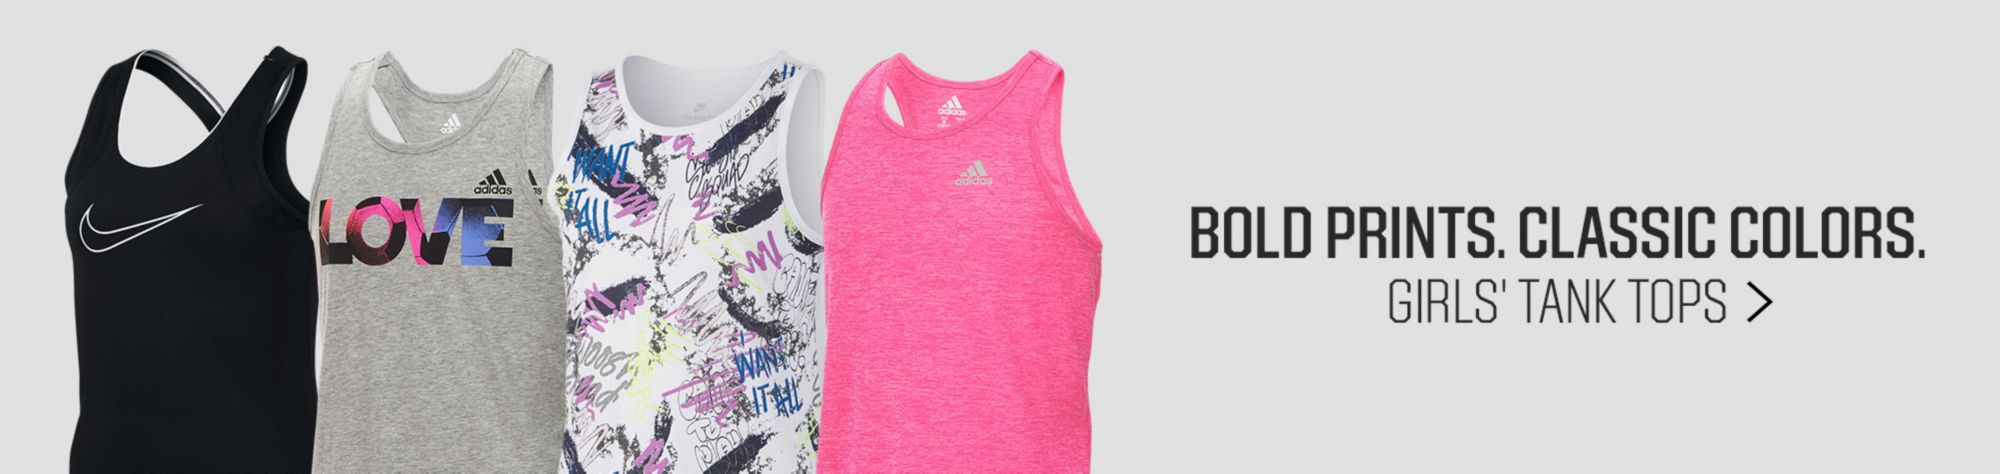 Bold Prints. Classic Colors. Girls Tank Tops